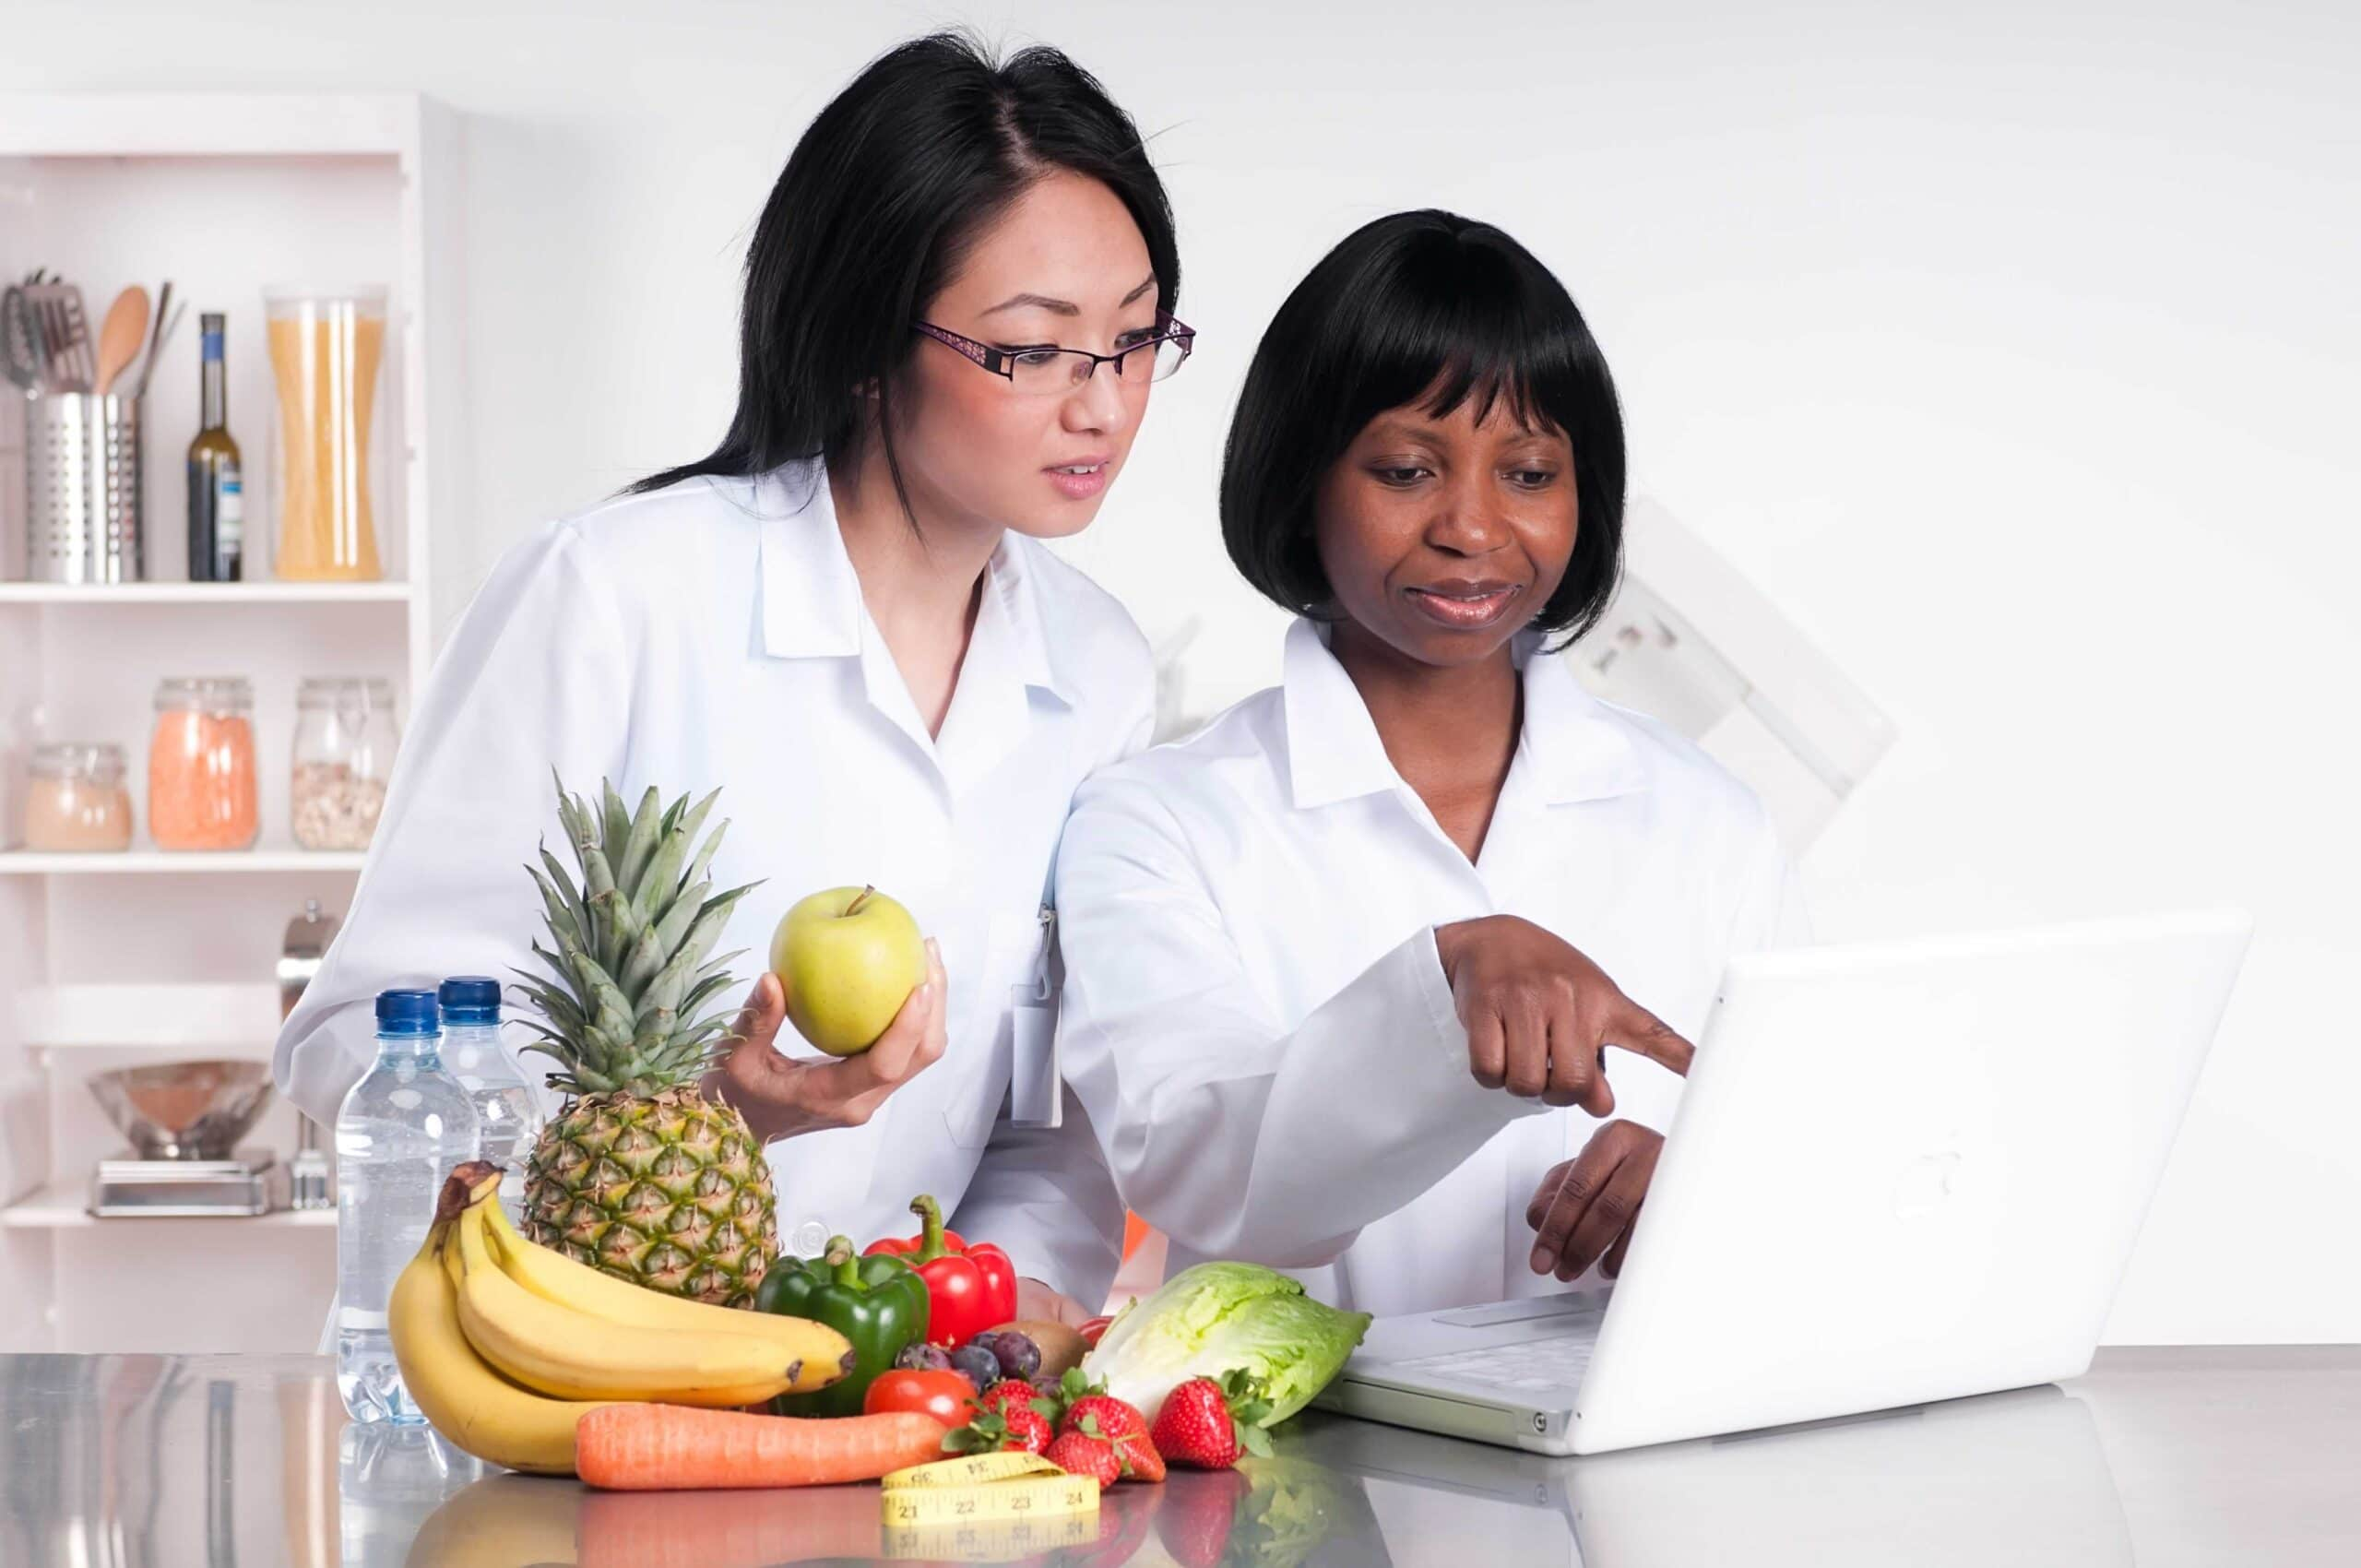 Dietitians discussing some information on a laptop with a pile of fruit and vegetables next to them.